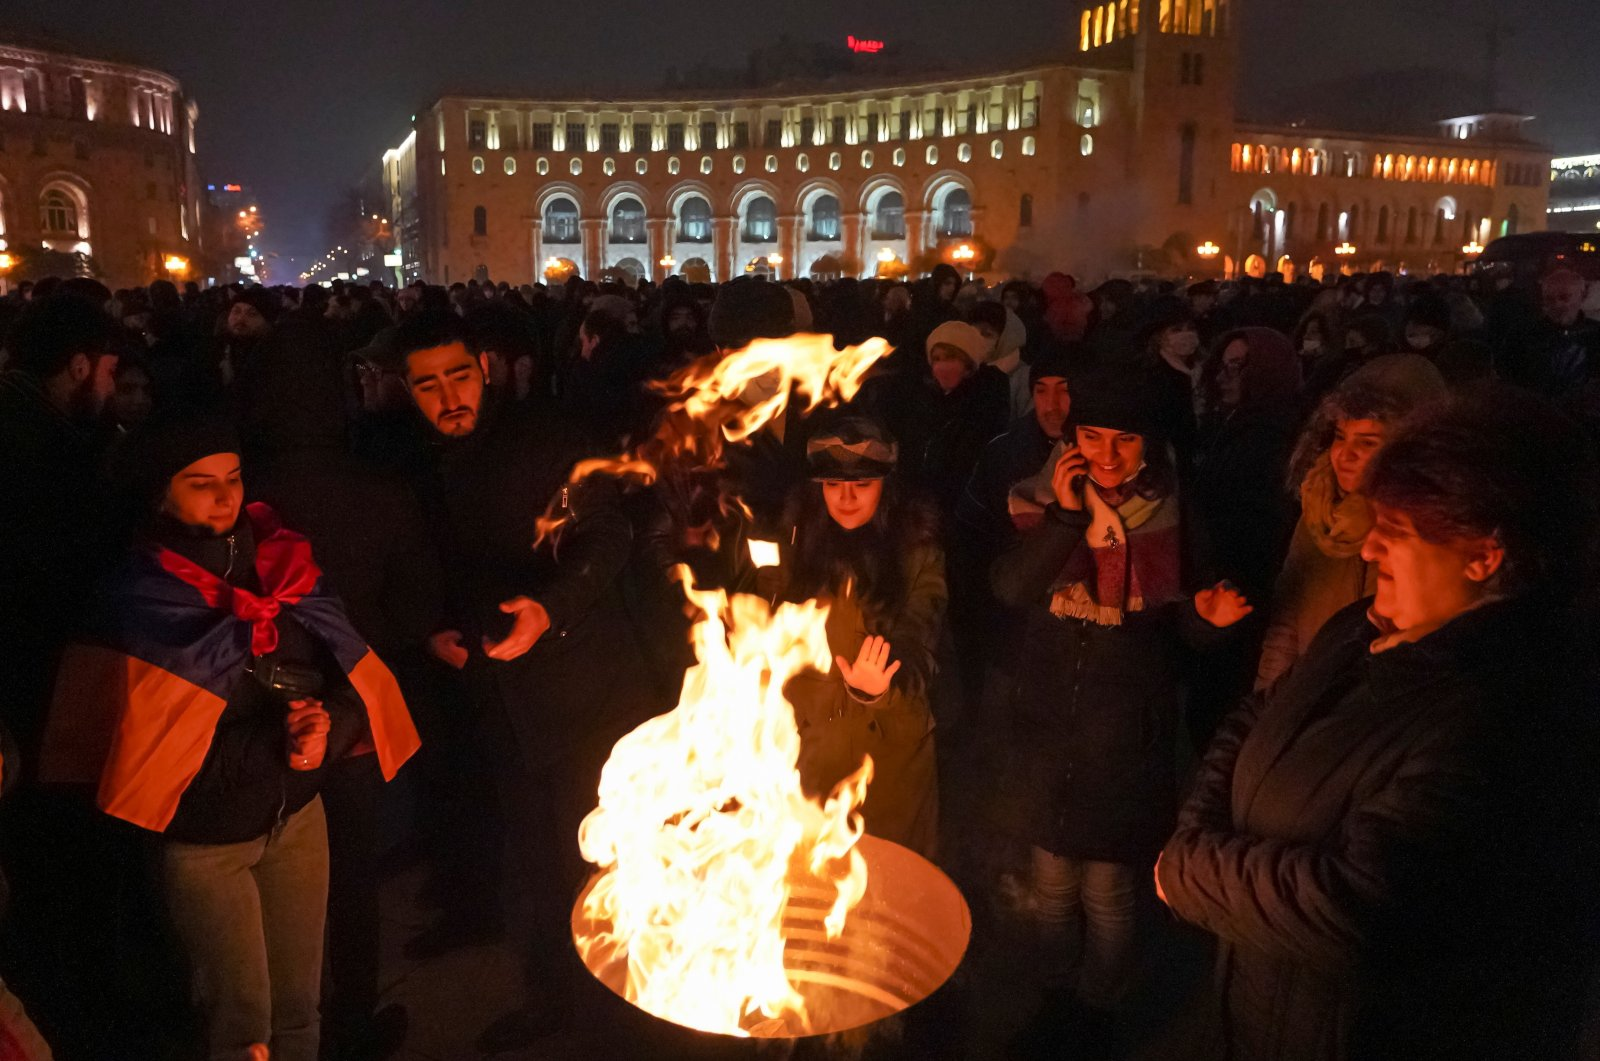 Opposition protesters warm themselves as they attend a rally to demand the resignation of Prime Minister Nikol Pashinyan in Yerevan, Armenia Dec. 22, 2020. (Reuters Photo)